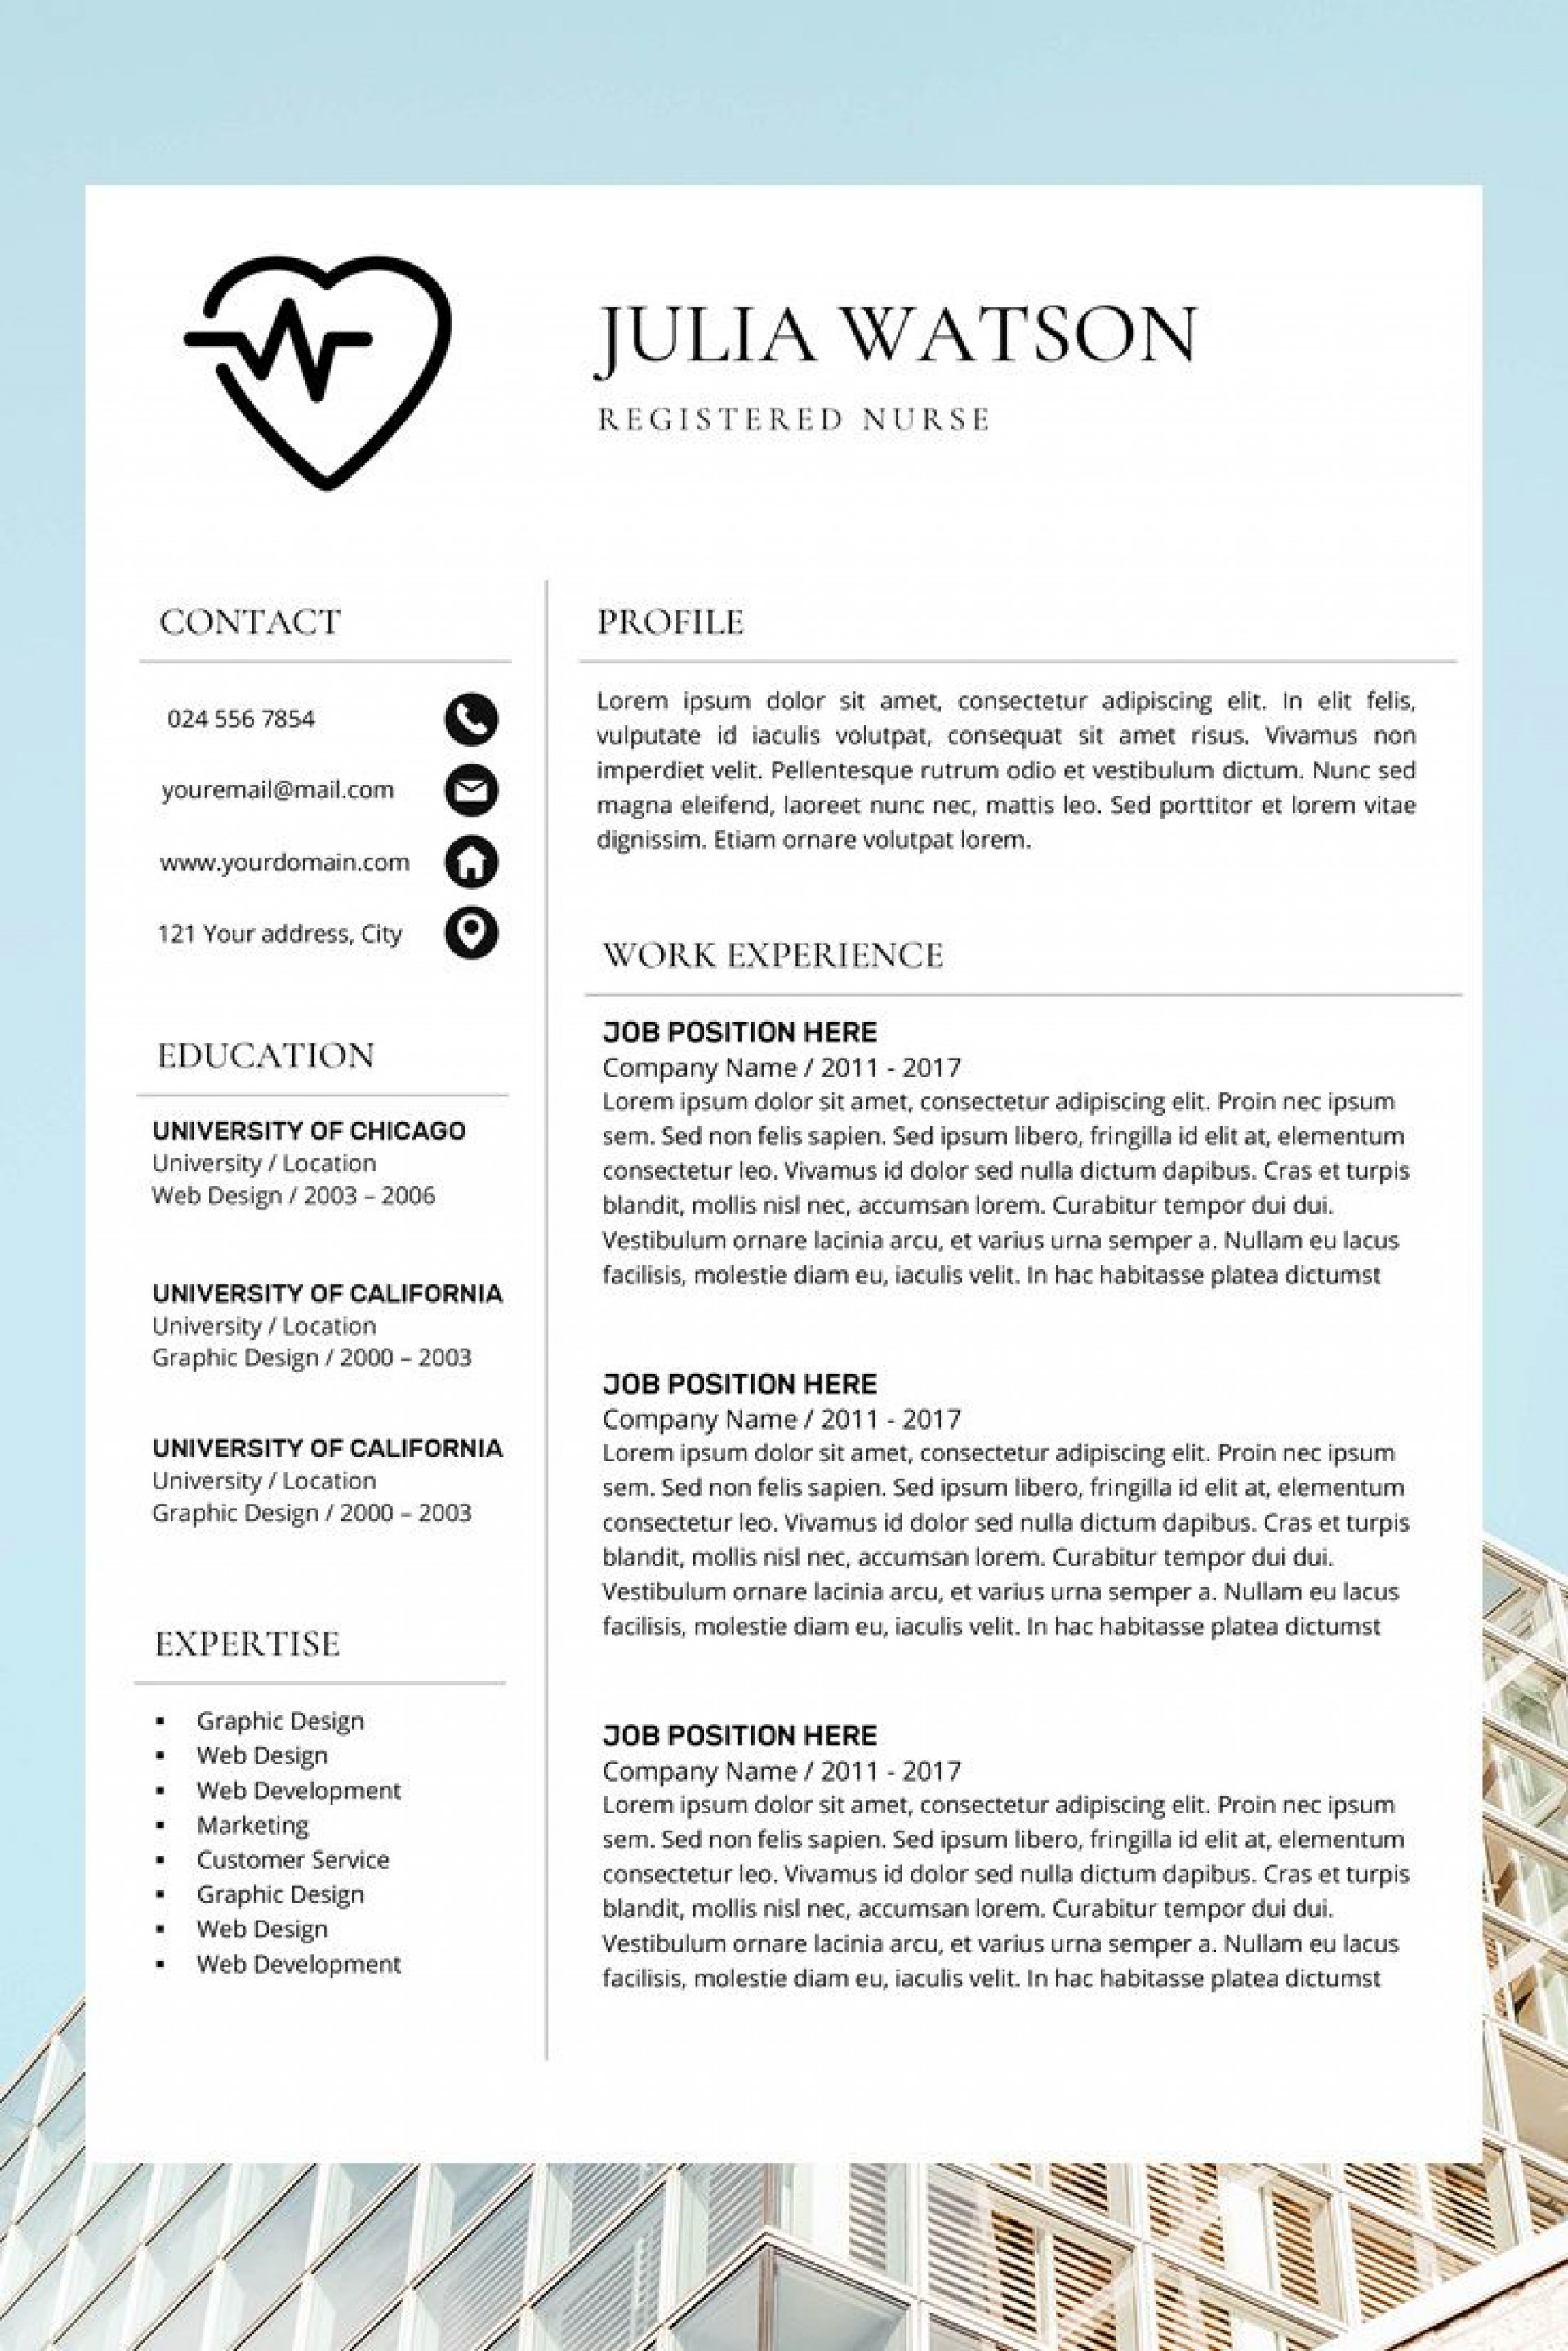 001 Amazing Nurse Resume Template Free Idea  Graduate Rn1920